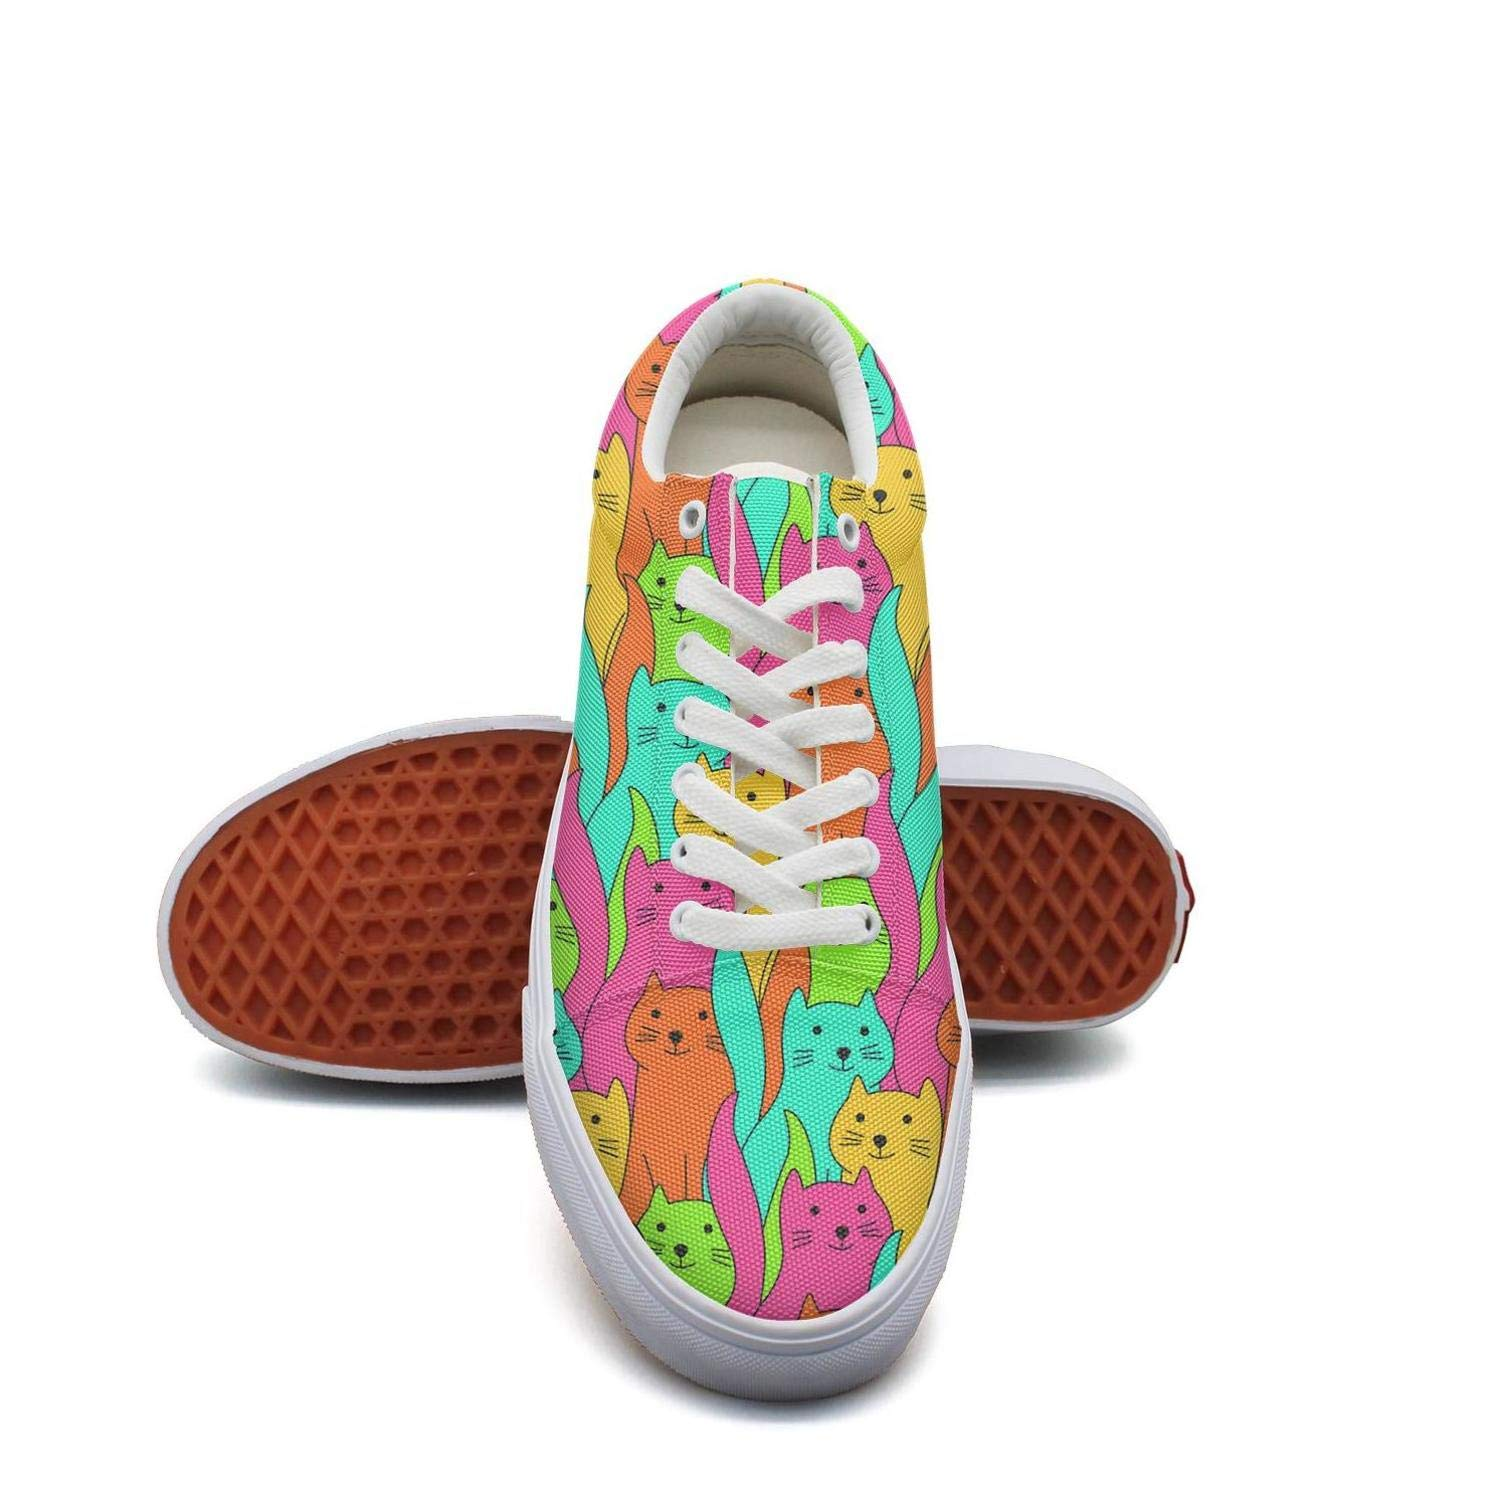 Pheomg Womens cat Genie Refills Low Top Casual Slip-on Canvas Shoes Classic Casual Shoes Sneakers